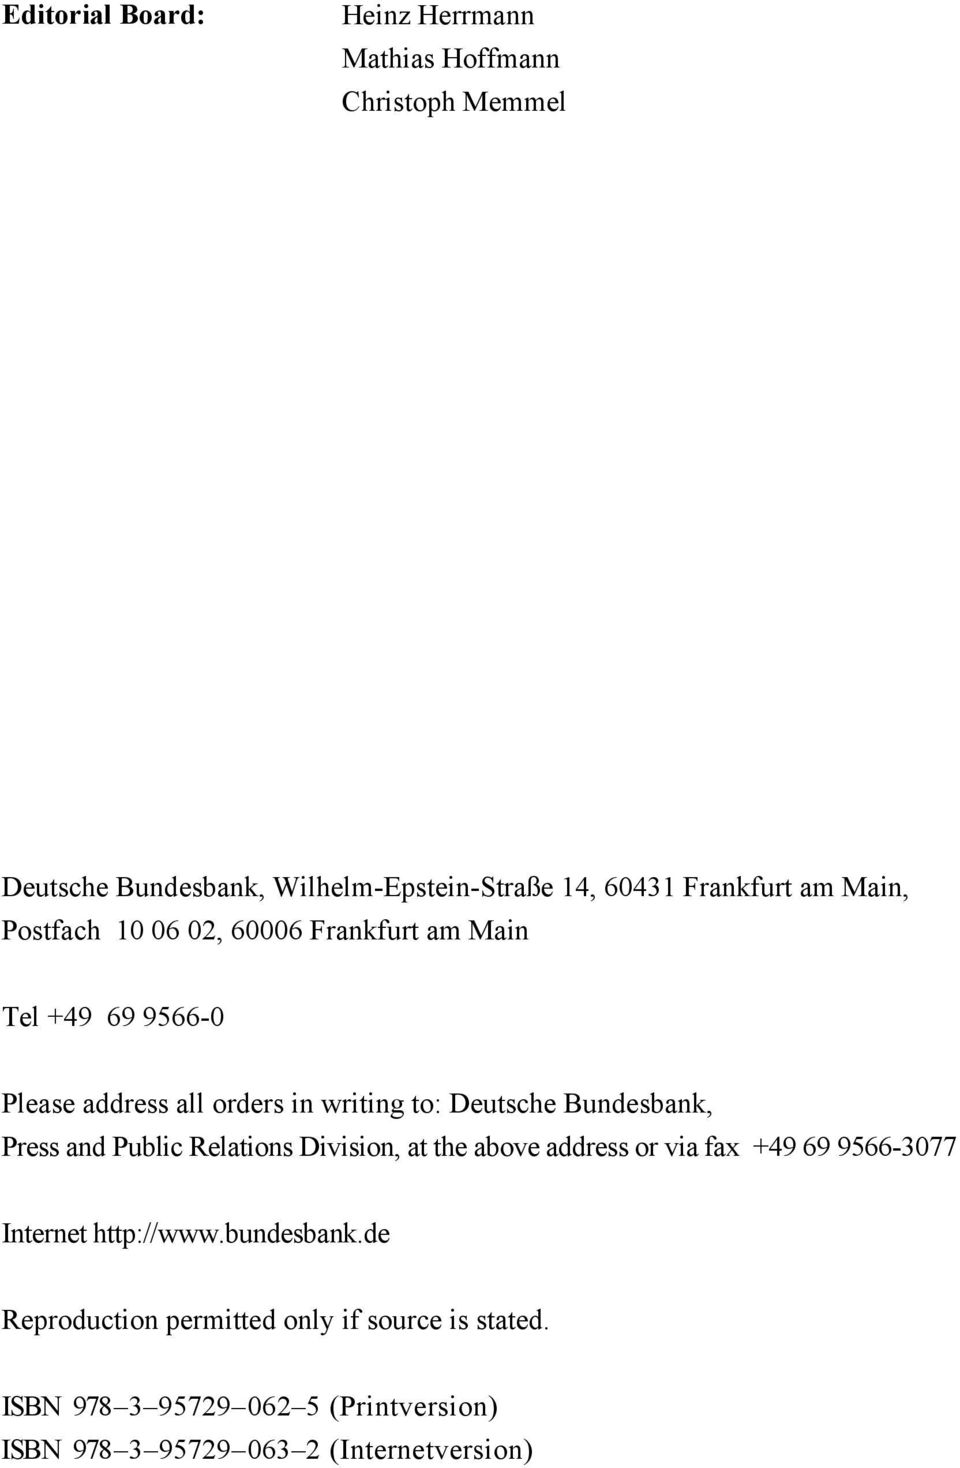 Deutsche Bundesbank, Press and Public Relations Division, at the above address or via fax +49 69 9566-3077 Internet http://www.